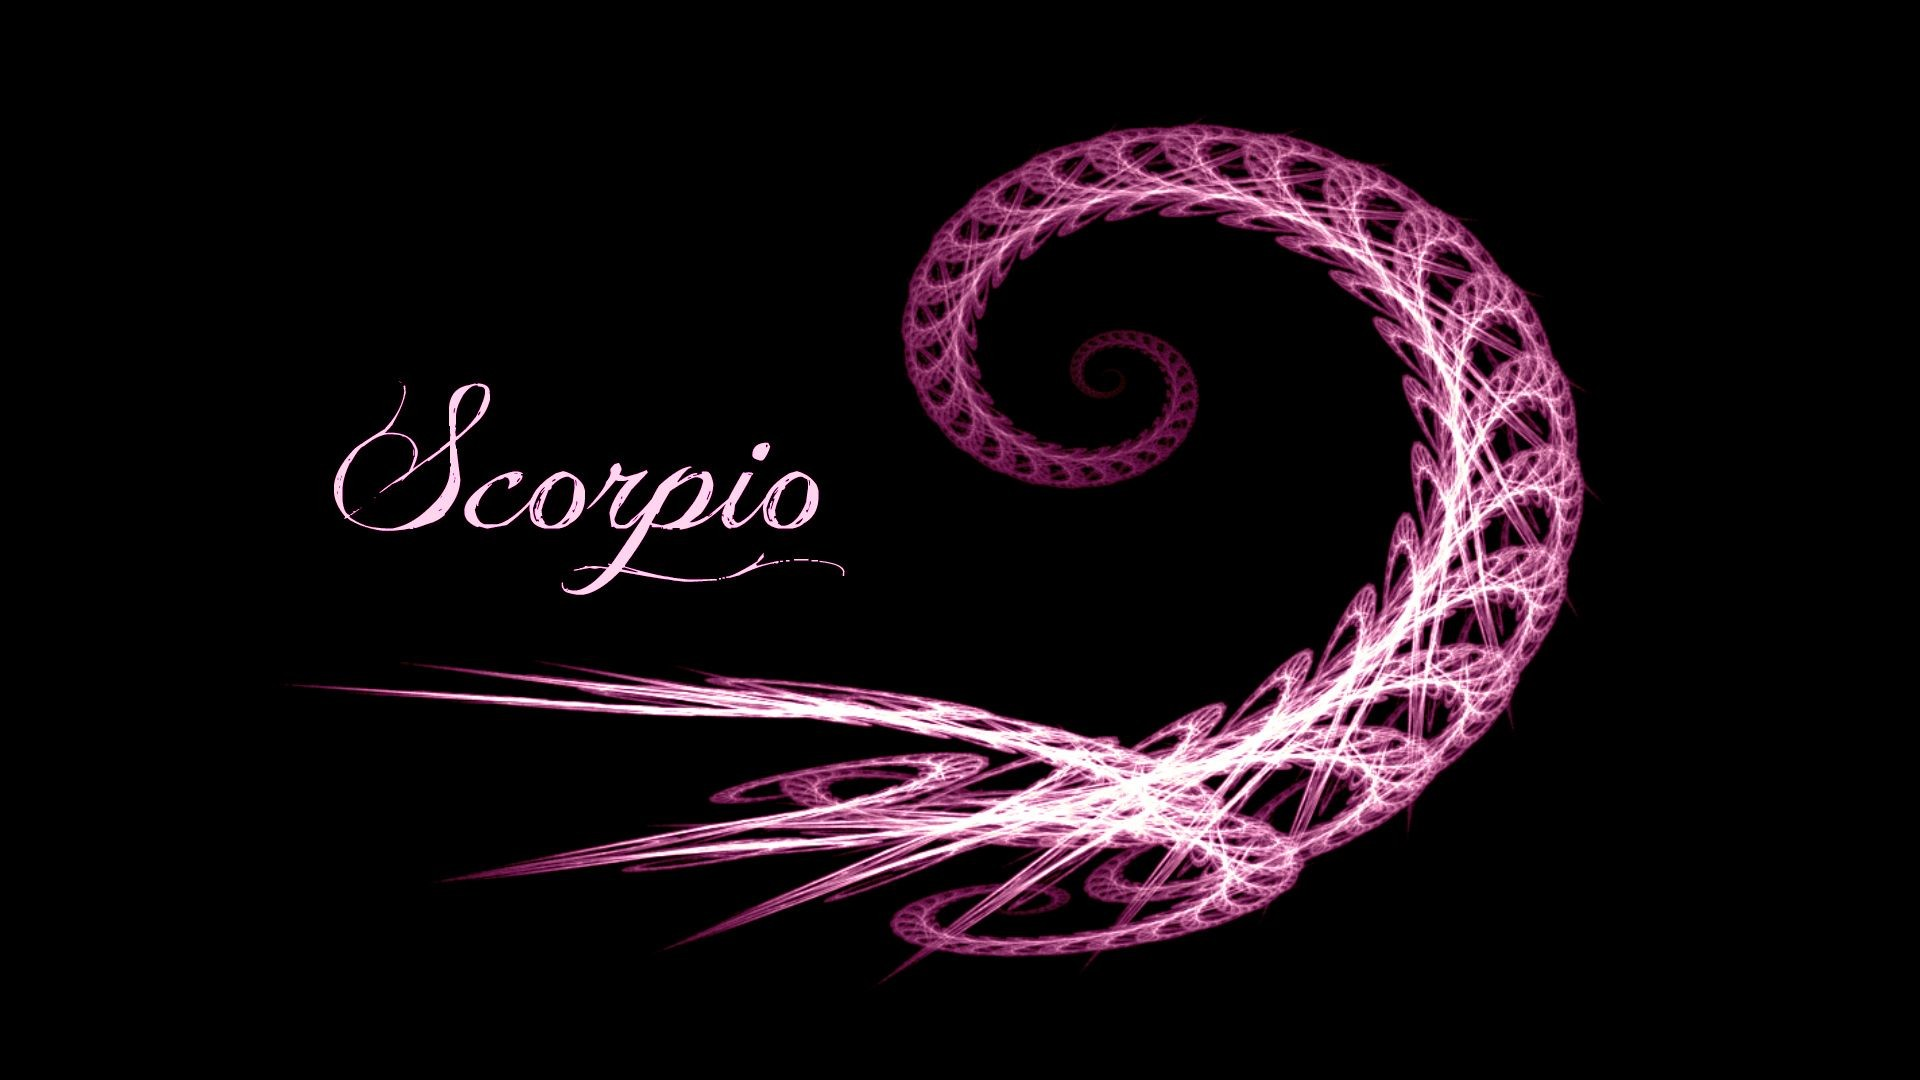 Res: 1920x1080, Scorpio | Scorpio Love Hurts